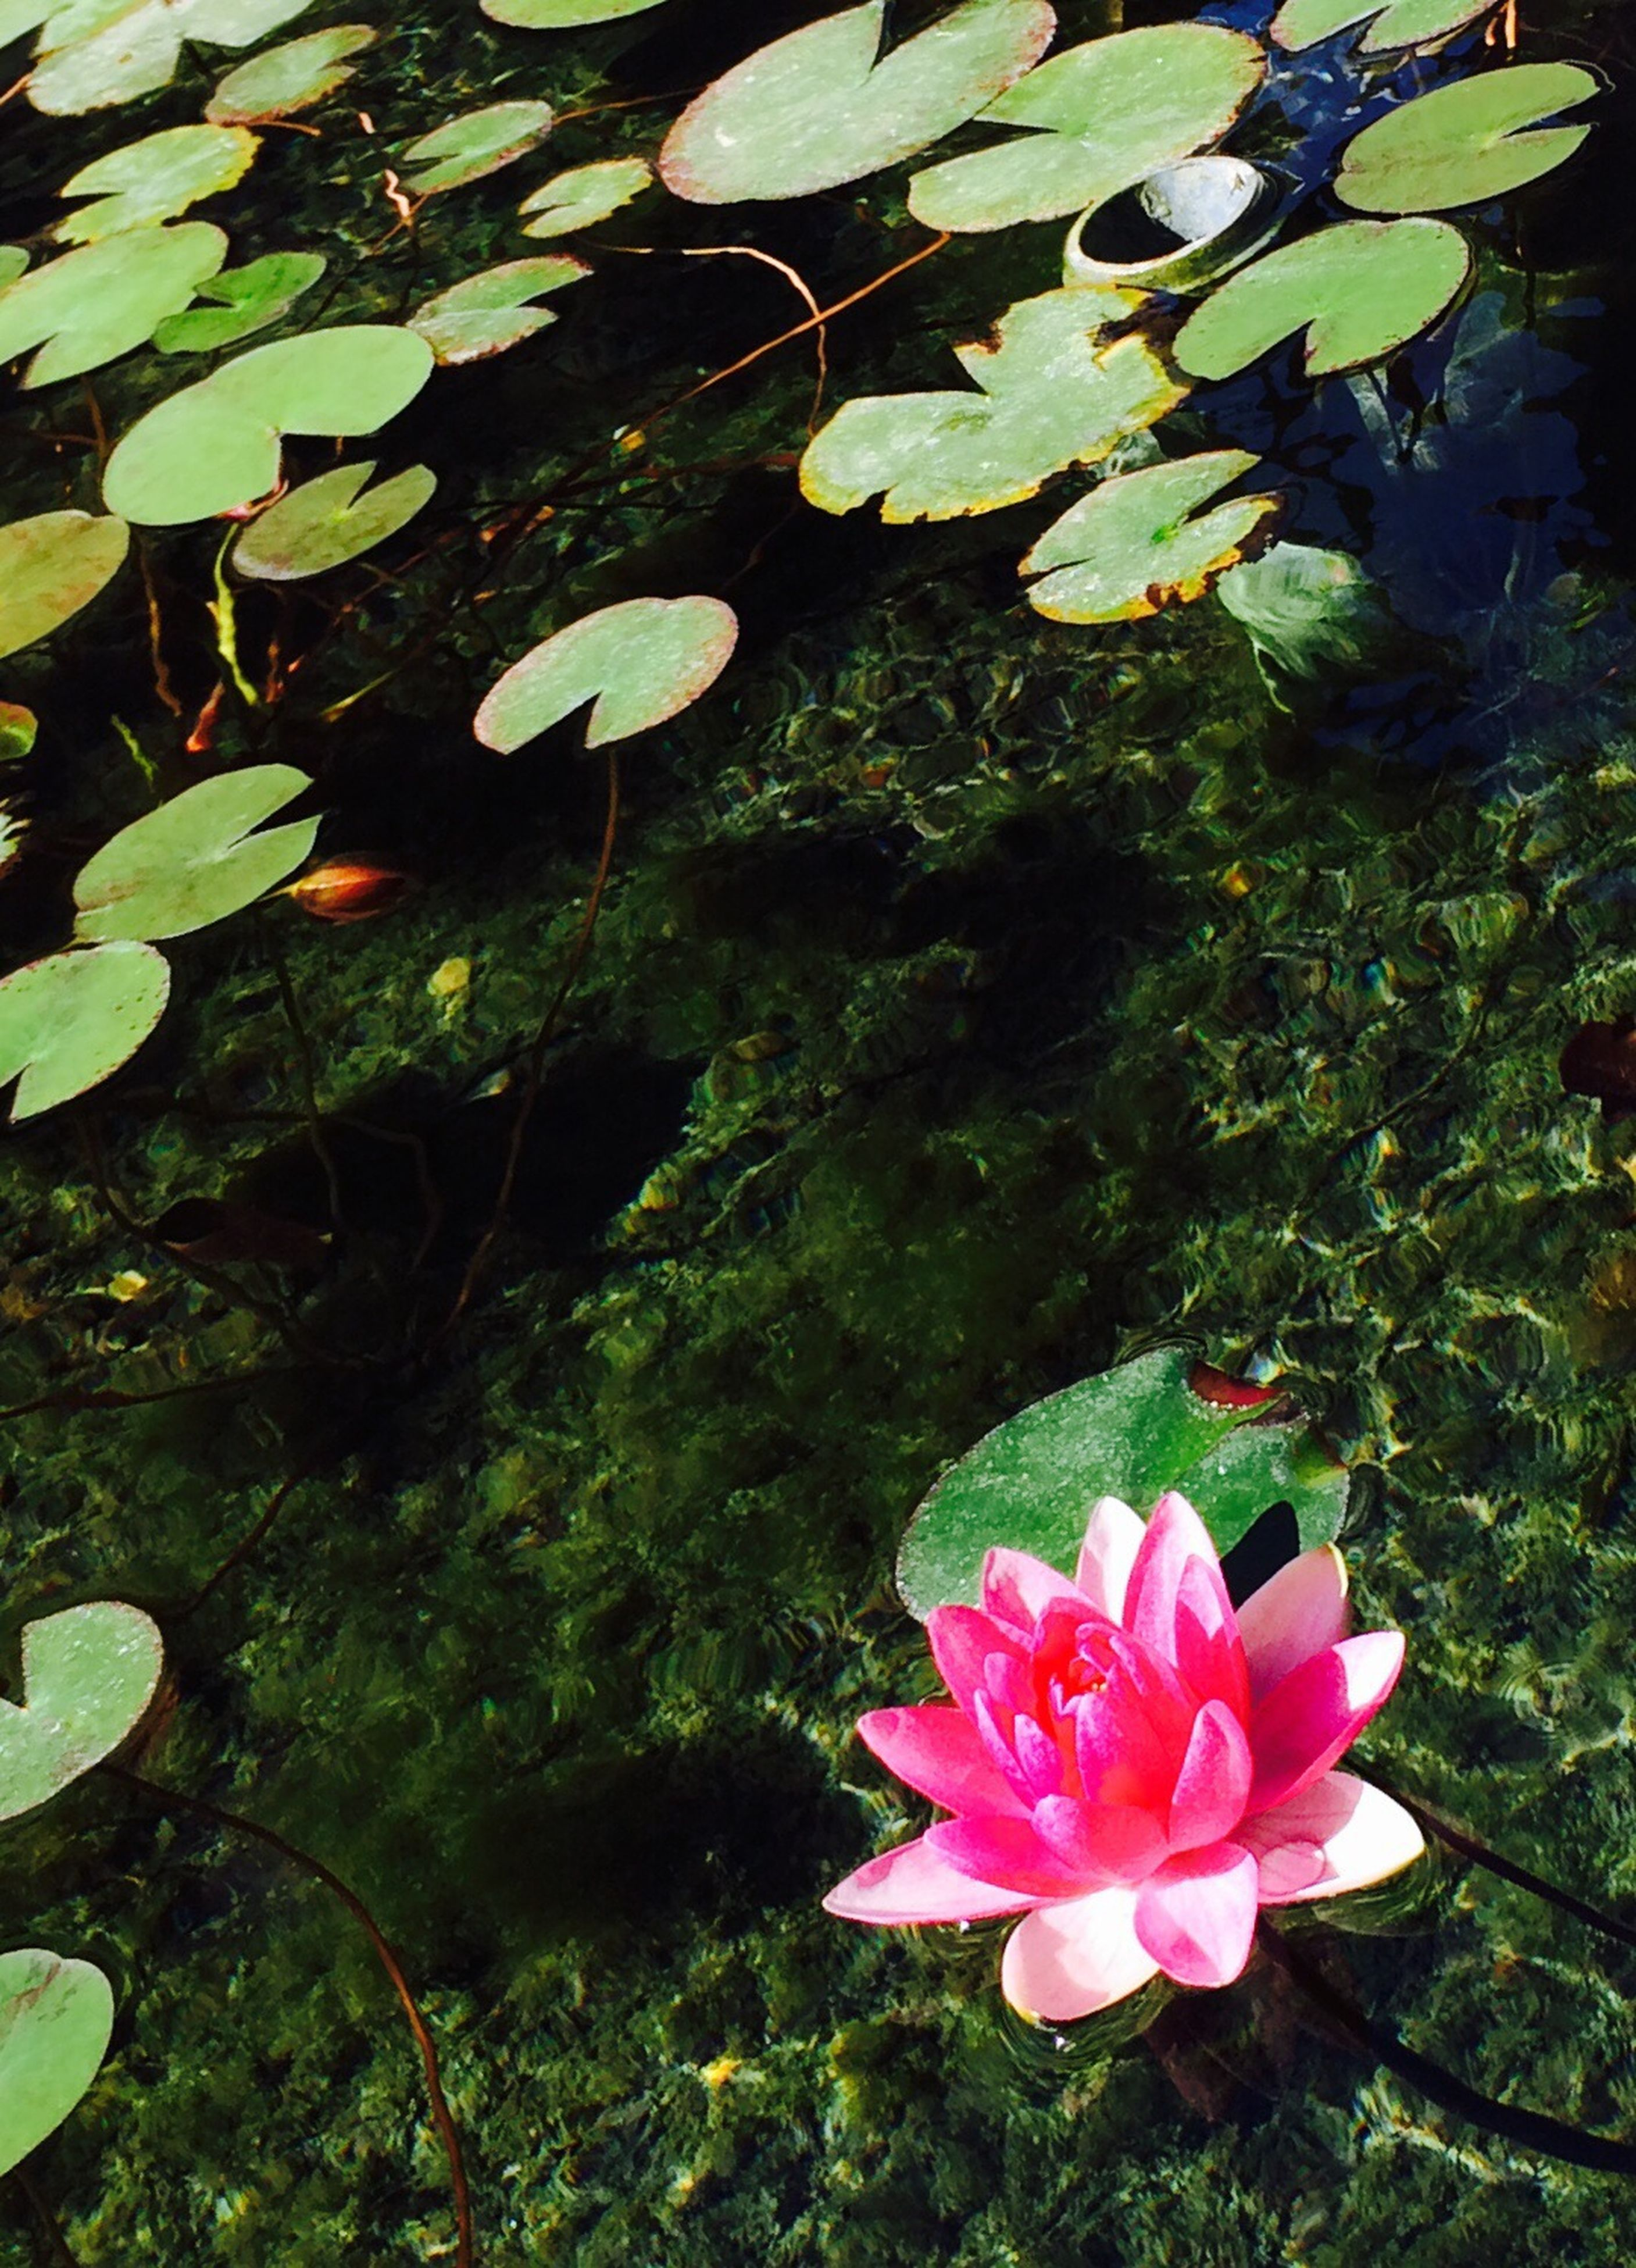 flower, petal, freshness, growth, fragility, pink color, flower head, beauty in nature, leaf, blooming, nature, plant, high angle view, green color, blossom, in bloom, pond, water lily, springtime, day